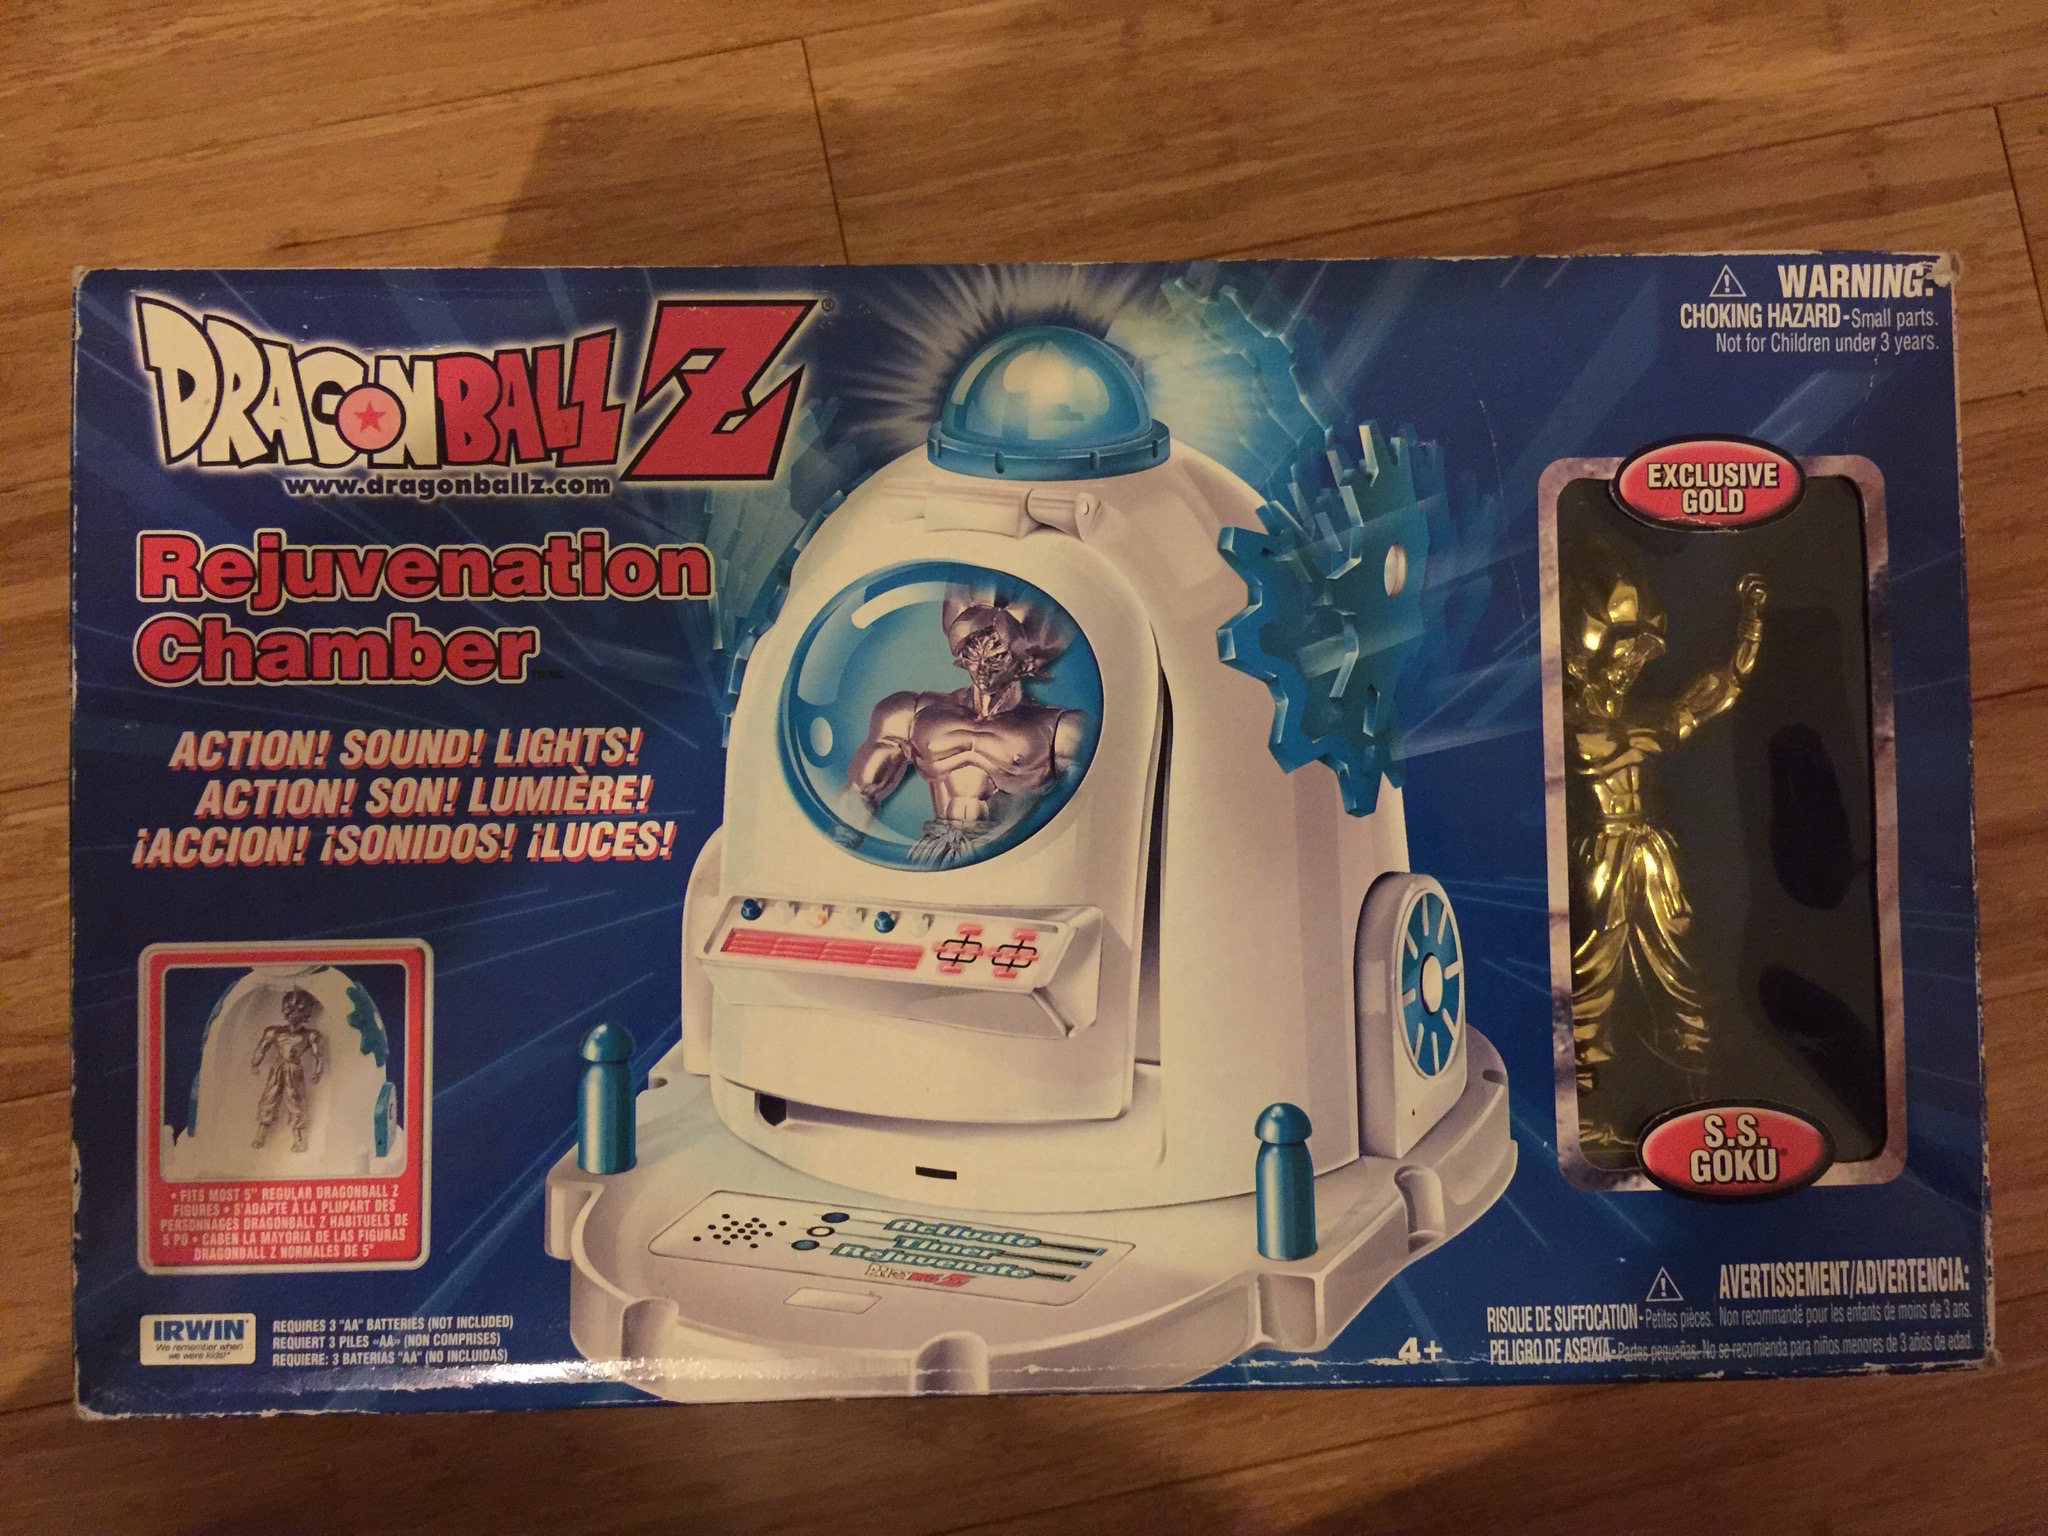 Dragon Ball Z Rejuvenation Chamber by Irwin Toys